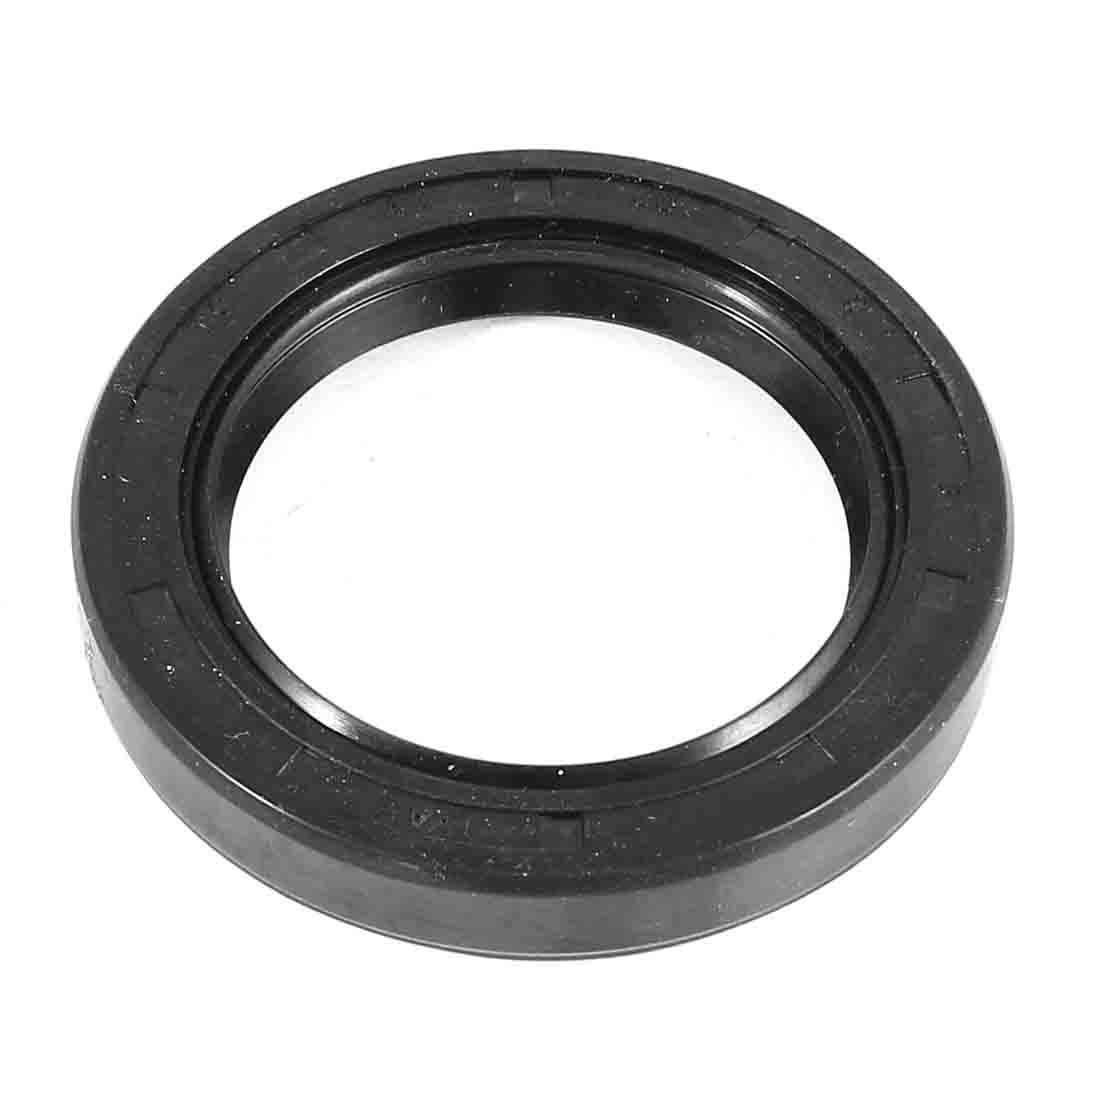 60mm x 42mm x 9mm Round Black Rubber Spring Skelecton Oil Seal Ring Sealing Gasket